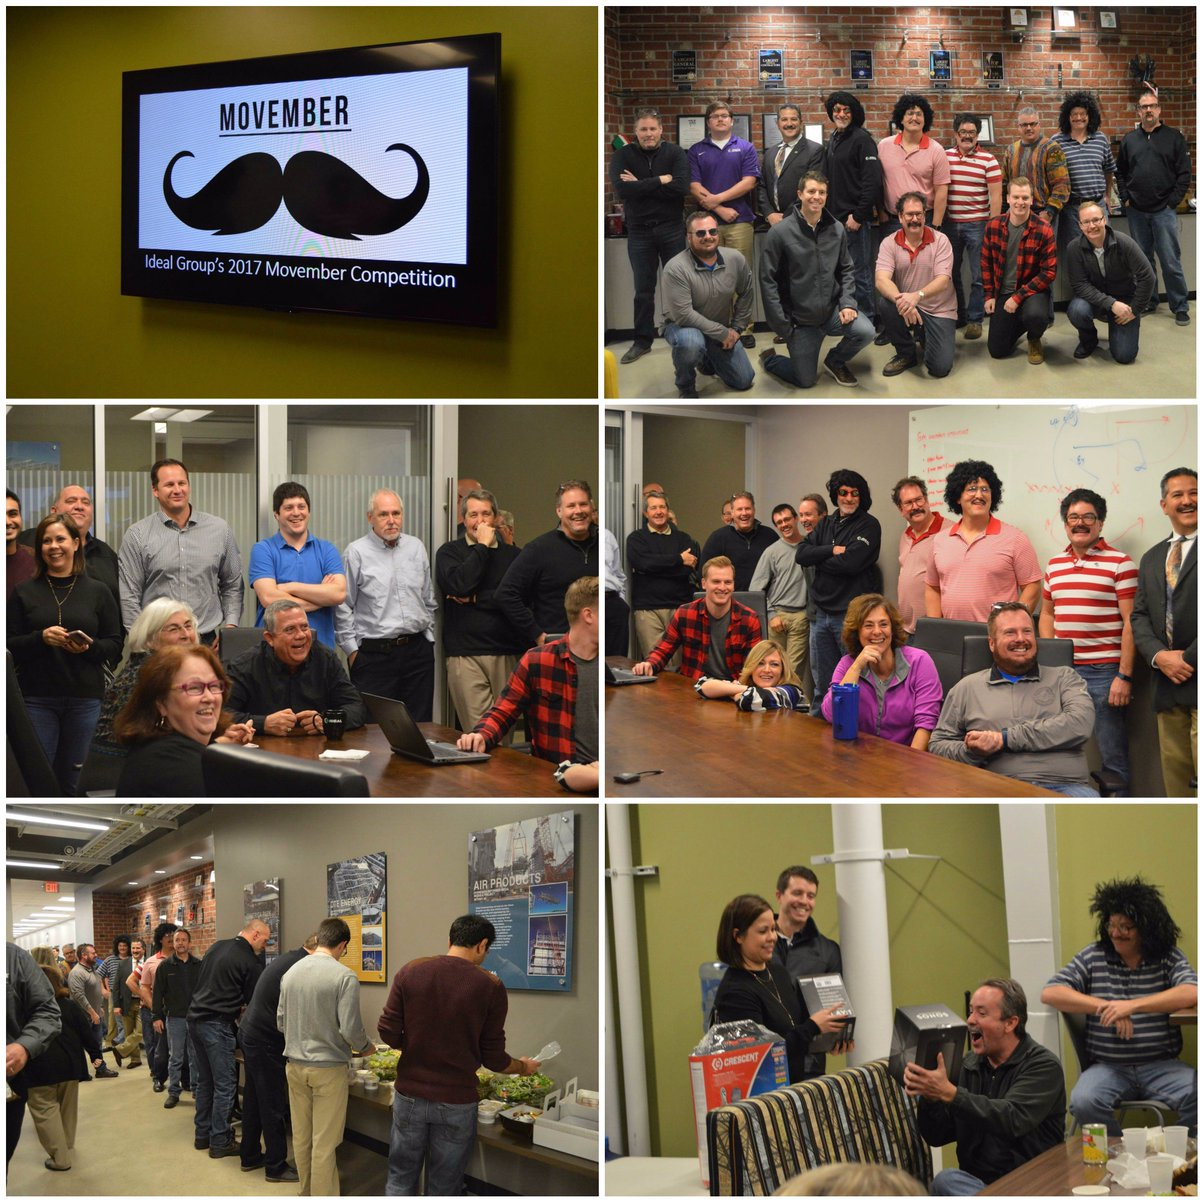 test Twitter Media - Ideal Group's 2017 Movember Contest was a huge success! Thank you to all employees who participated and helped put this together. Movember is about raising awareness of prostate cancer, testicular cancer and mental health in men. https://t.co/XEjL8U7pKw